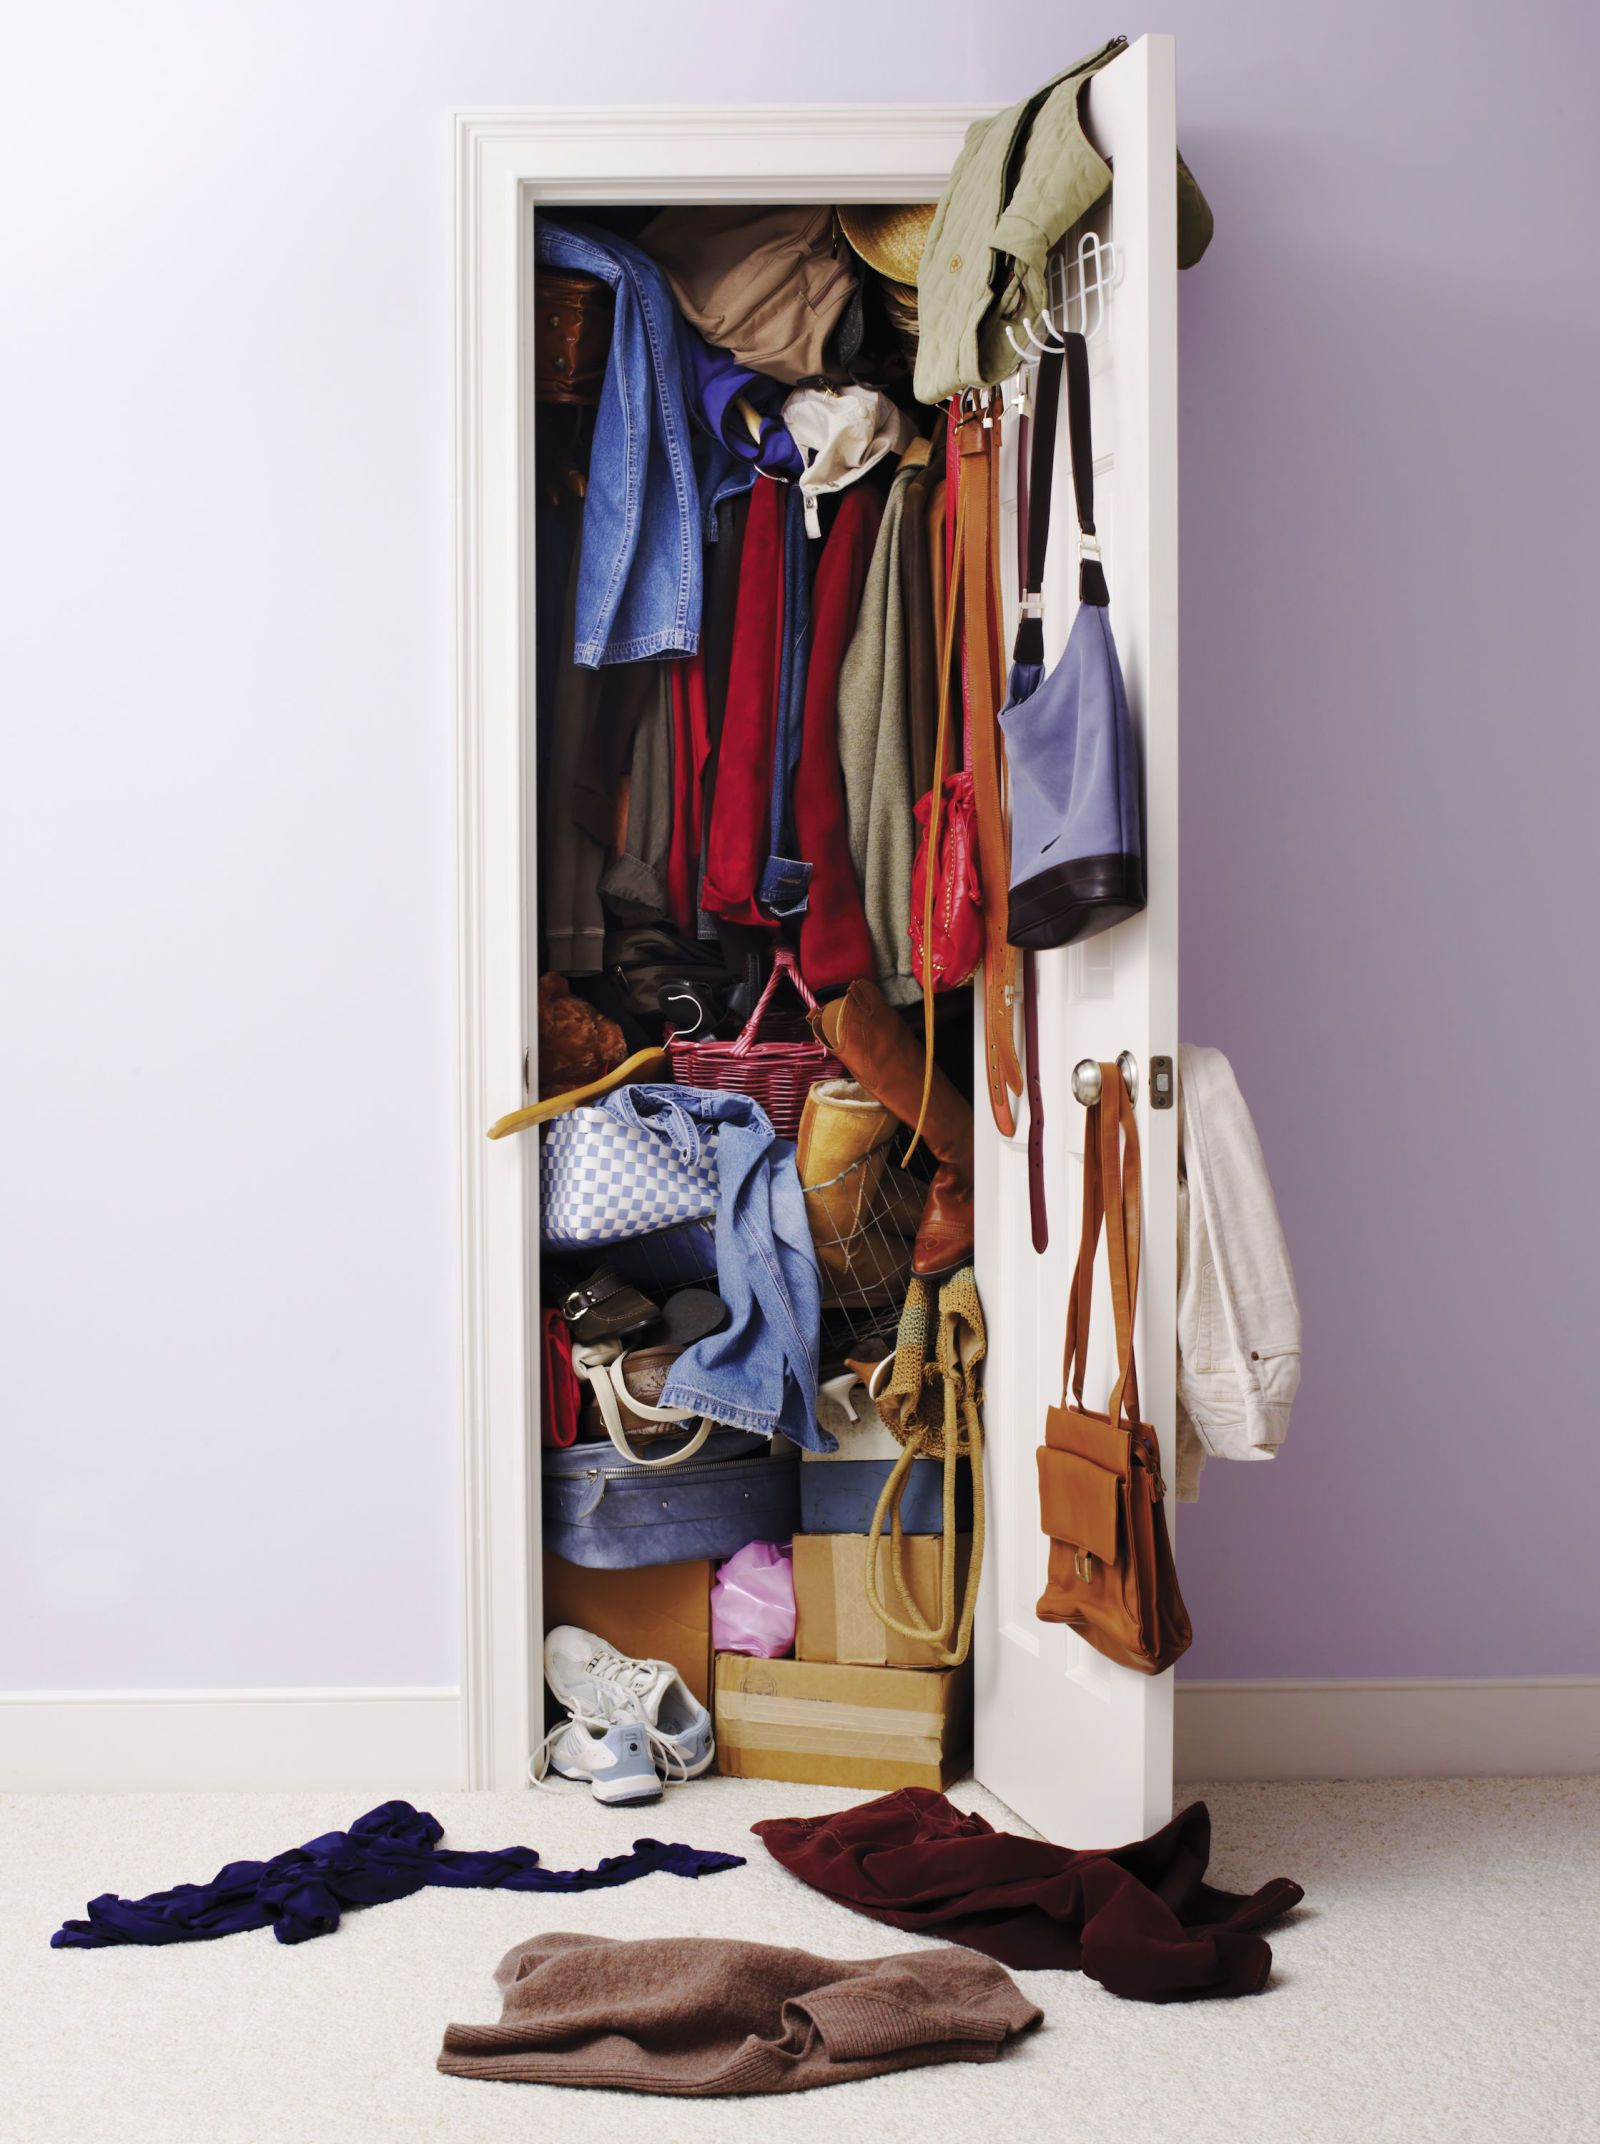 Care To Get Rid Of Clutter? First, Determine What Kind Of Clutterer You Are